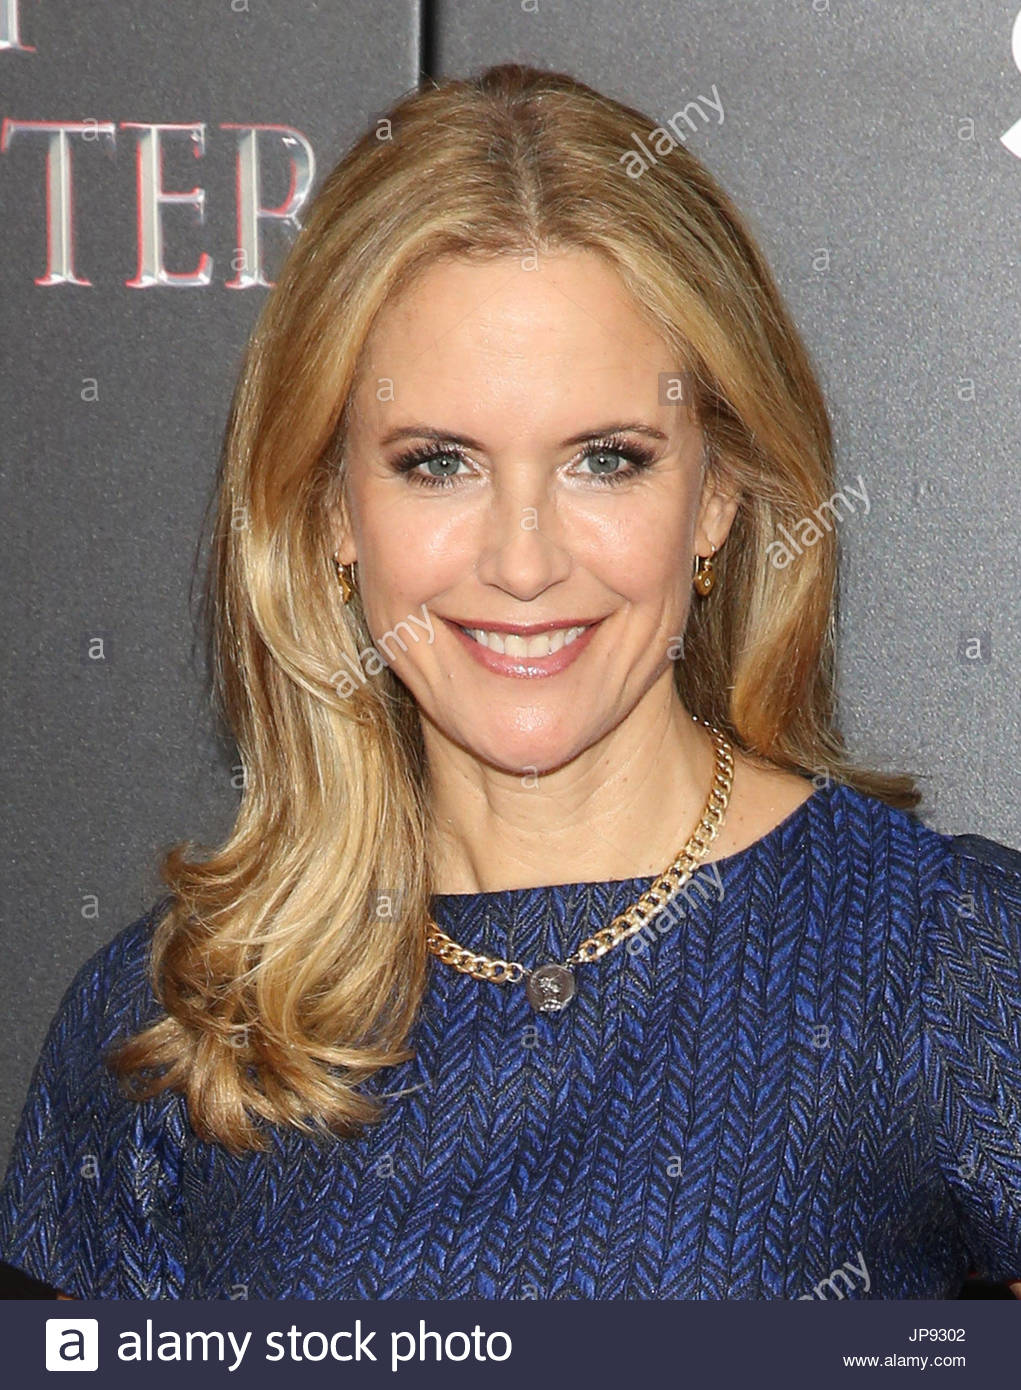 Kelly preston twins